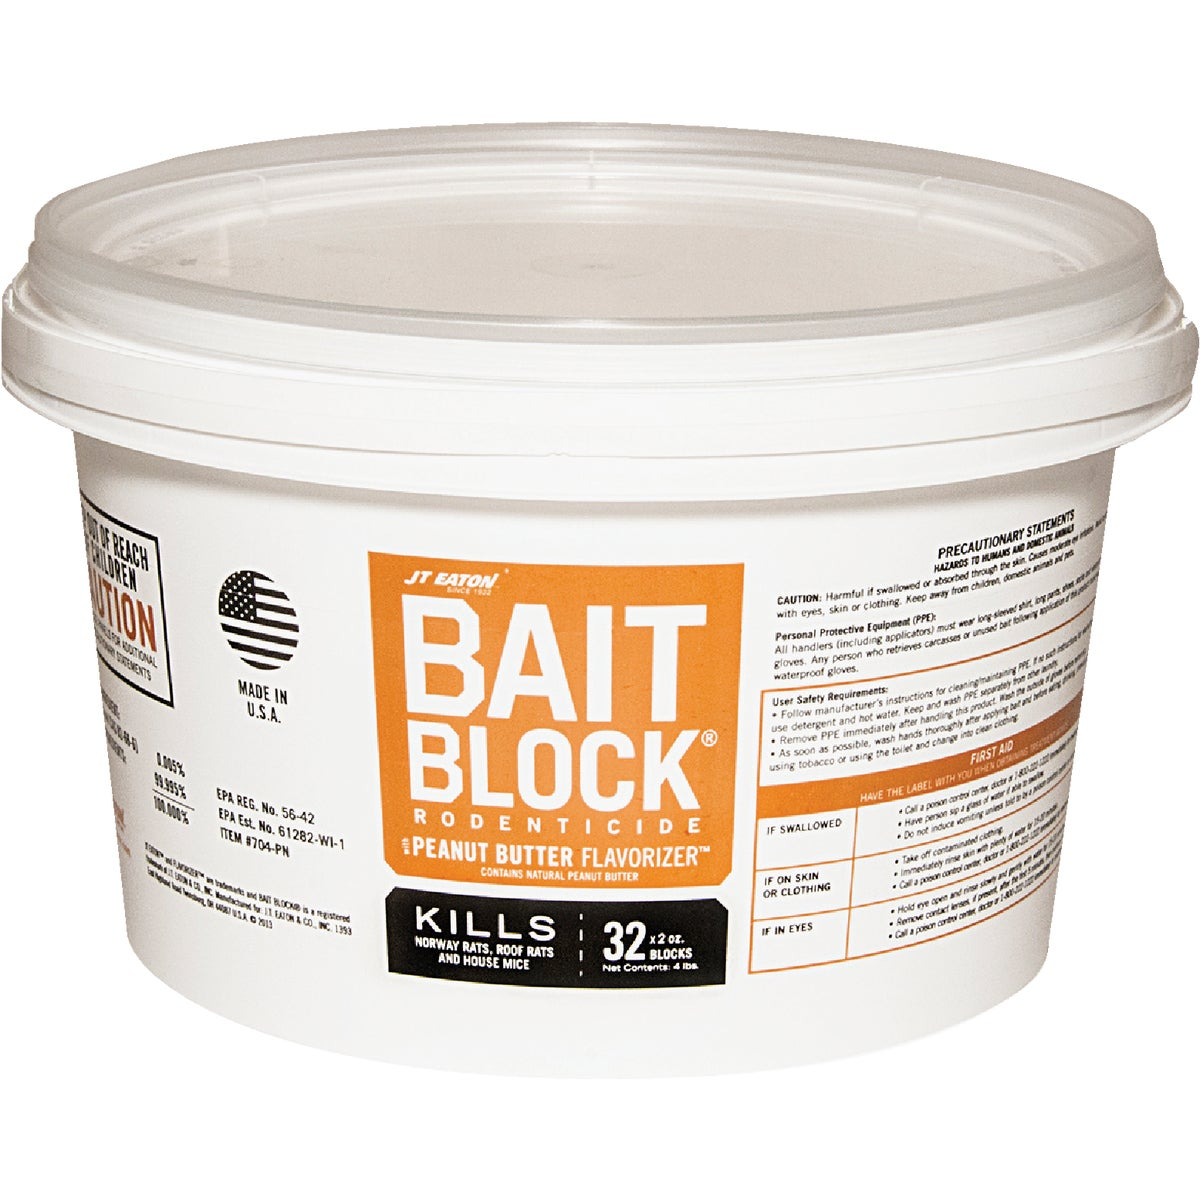 Item 701905, Peanut butter flavor Bait Block for rats and mice. Kills Norway rats, roof rats, and house mice. Contains a first generation anticoagulant bait. 4 Lb.